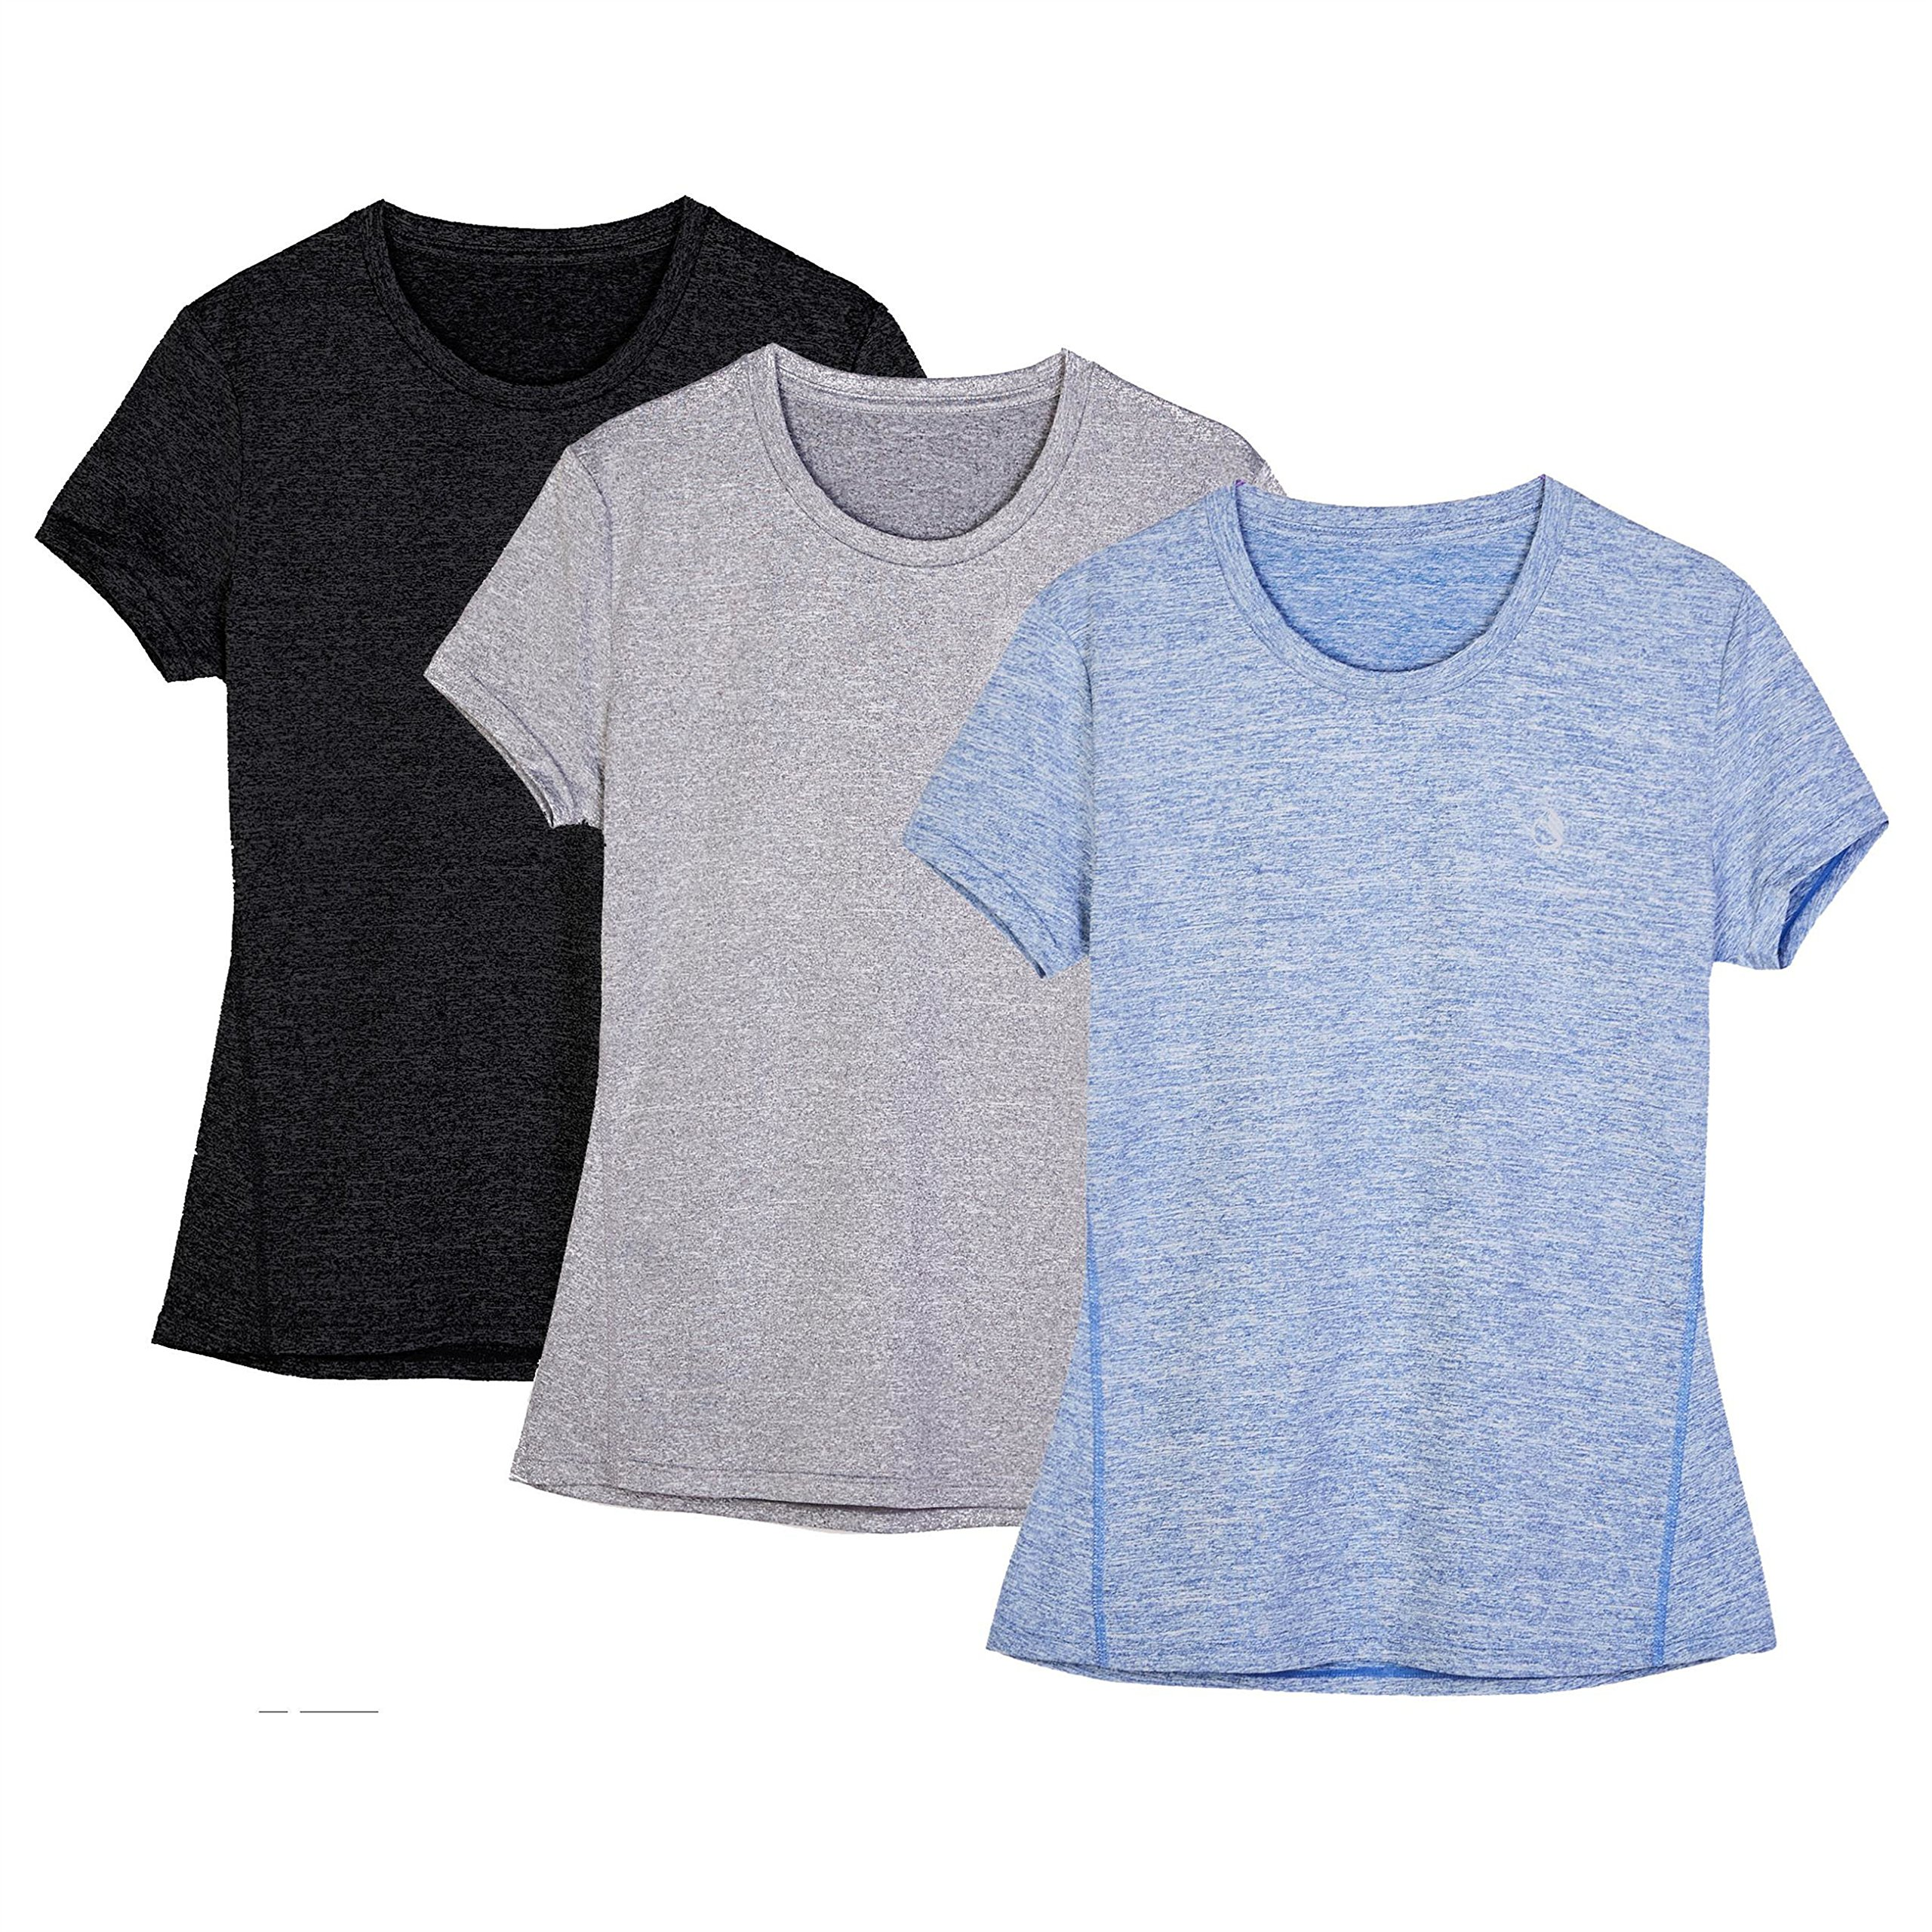 icyzone Women's Ultimate Short-Sleeve Workout Running Yoga Fitness Sports Tshirts (Pack of 3) (M, Black/Granite/Blue)